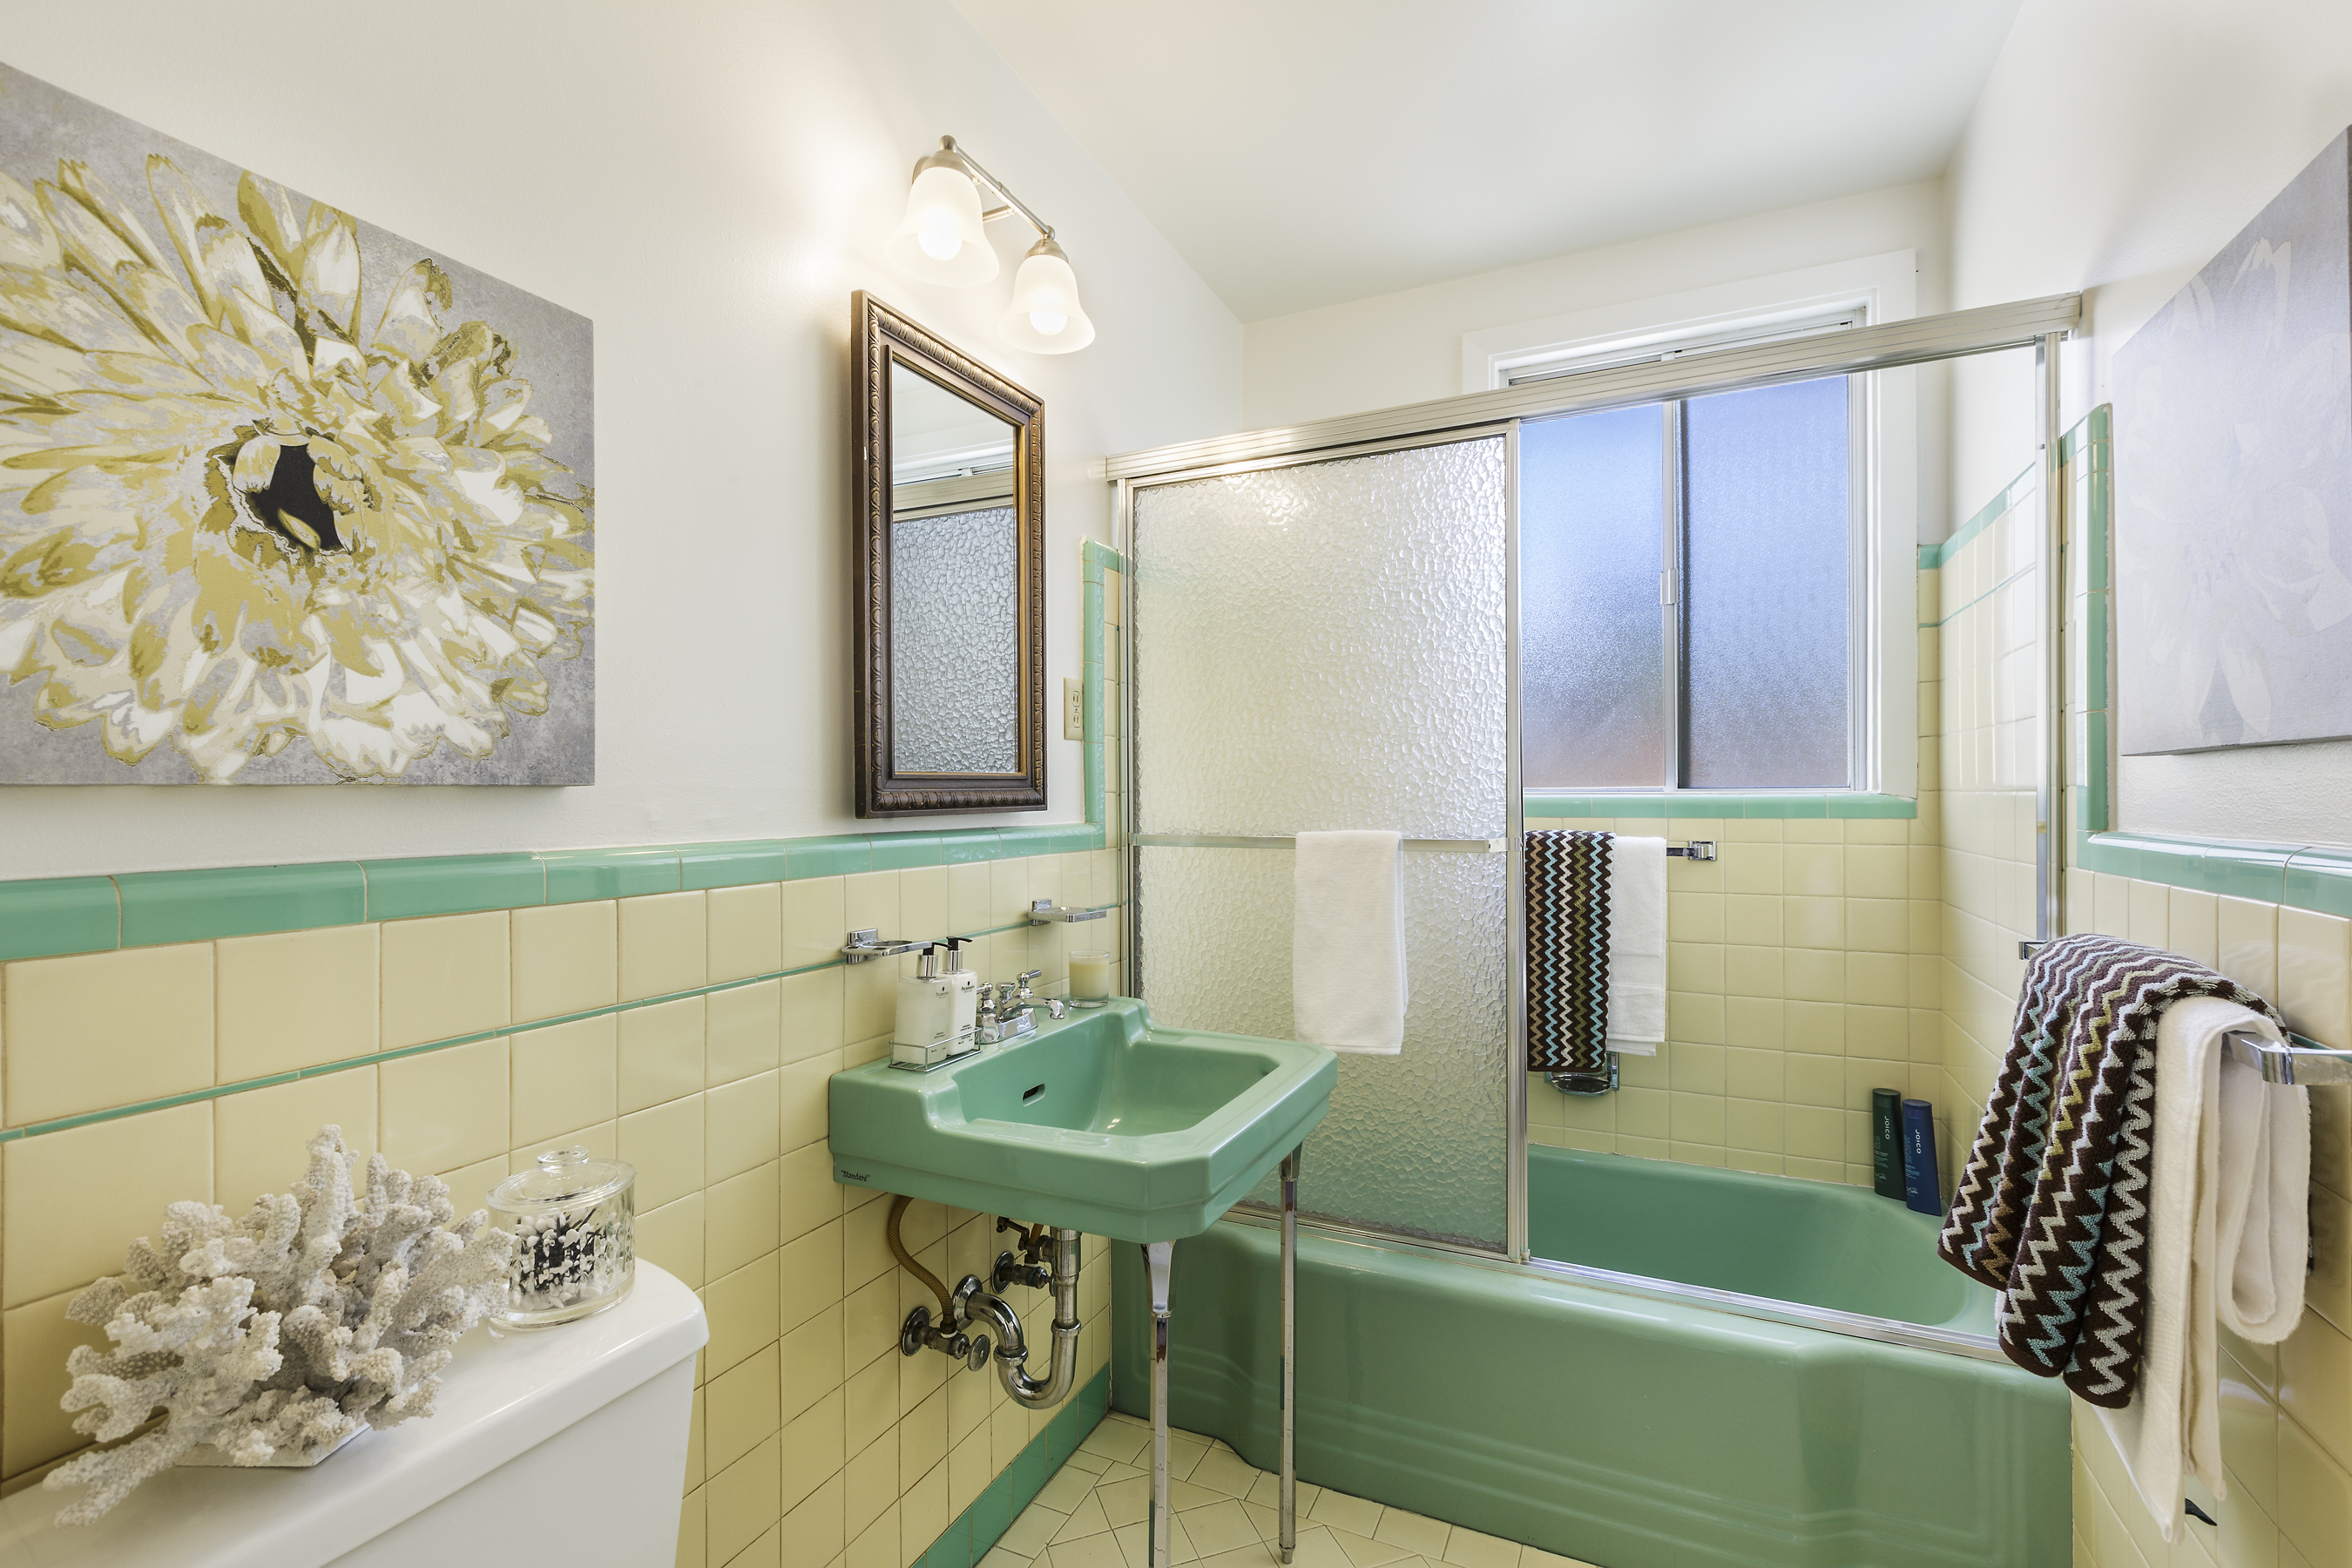 15-1260-Carson-2bath-high-res